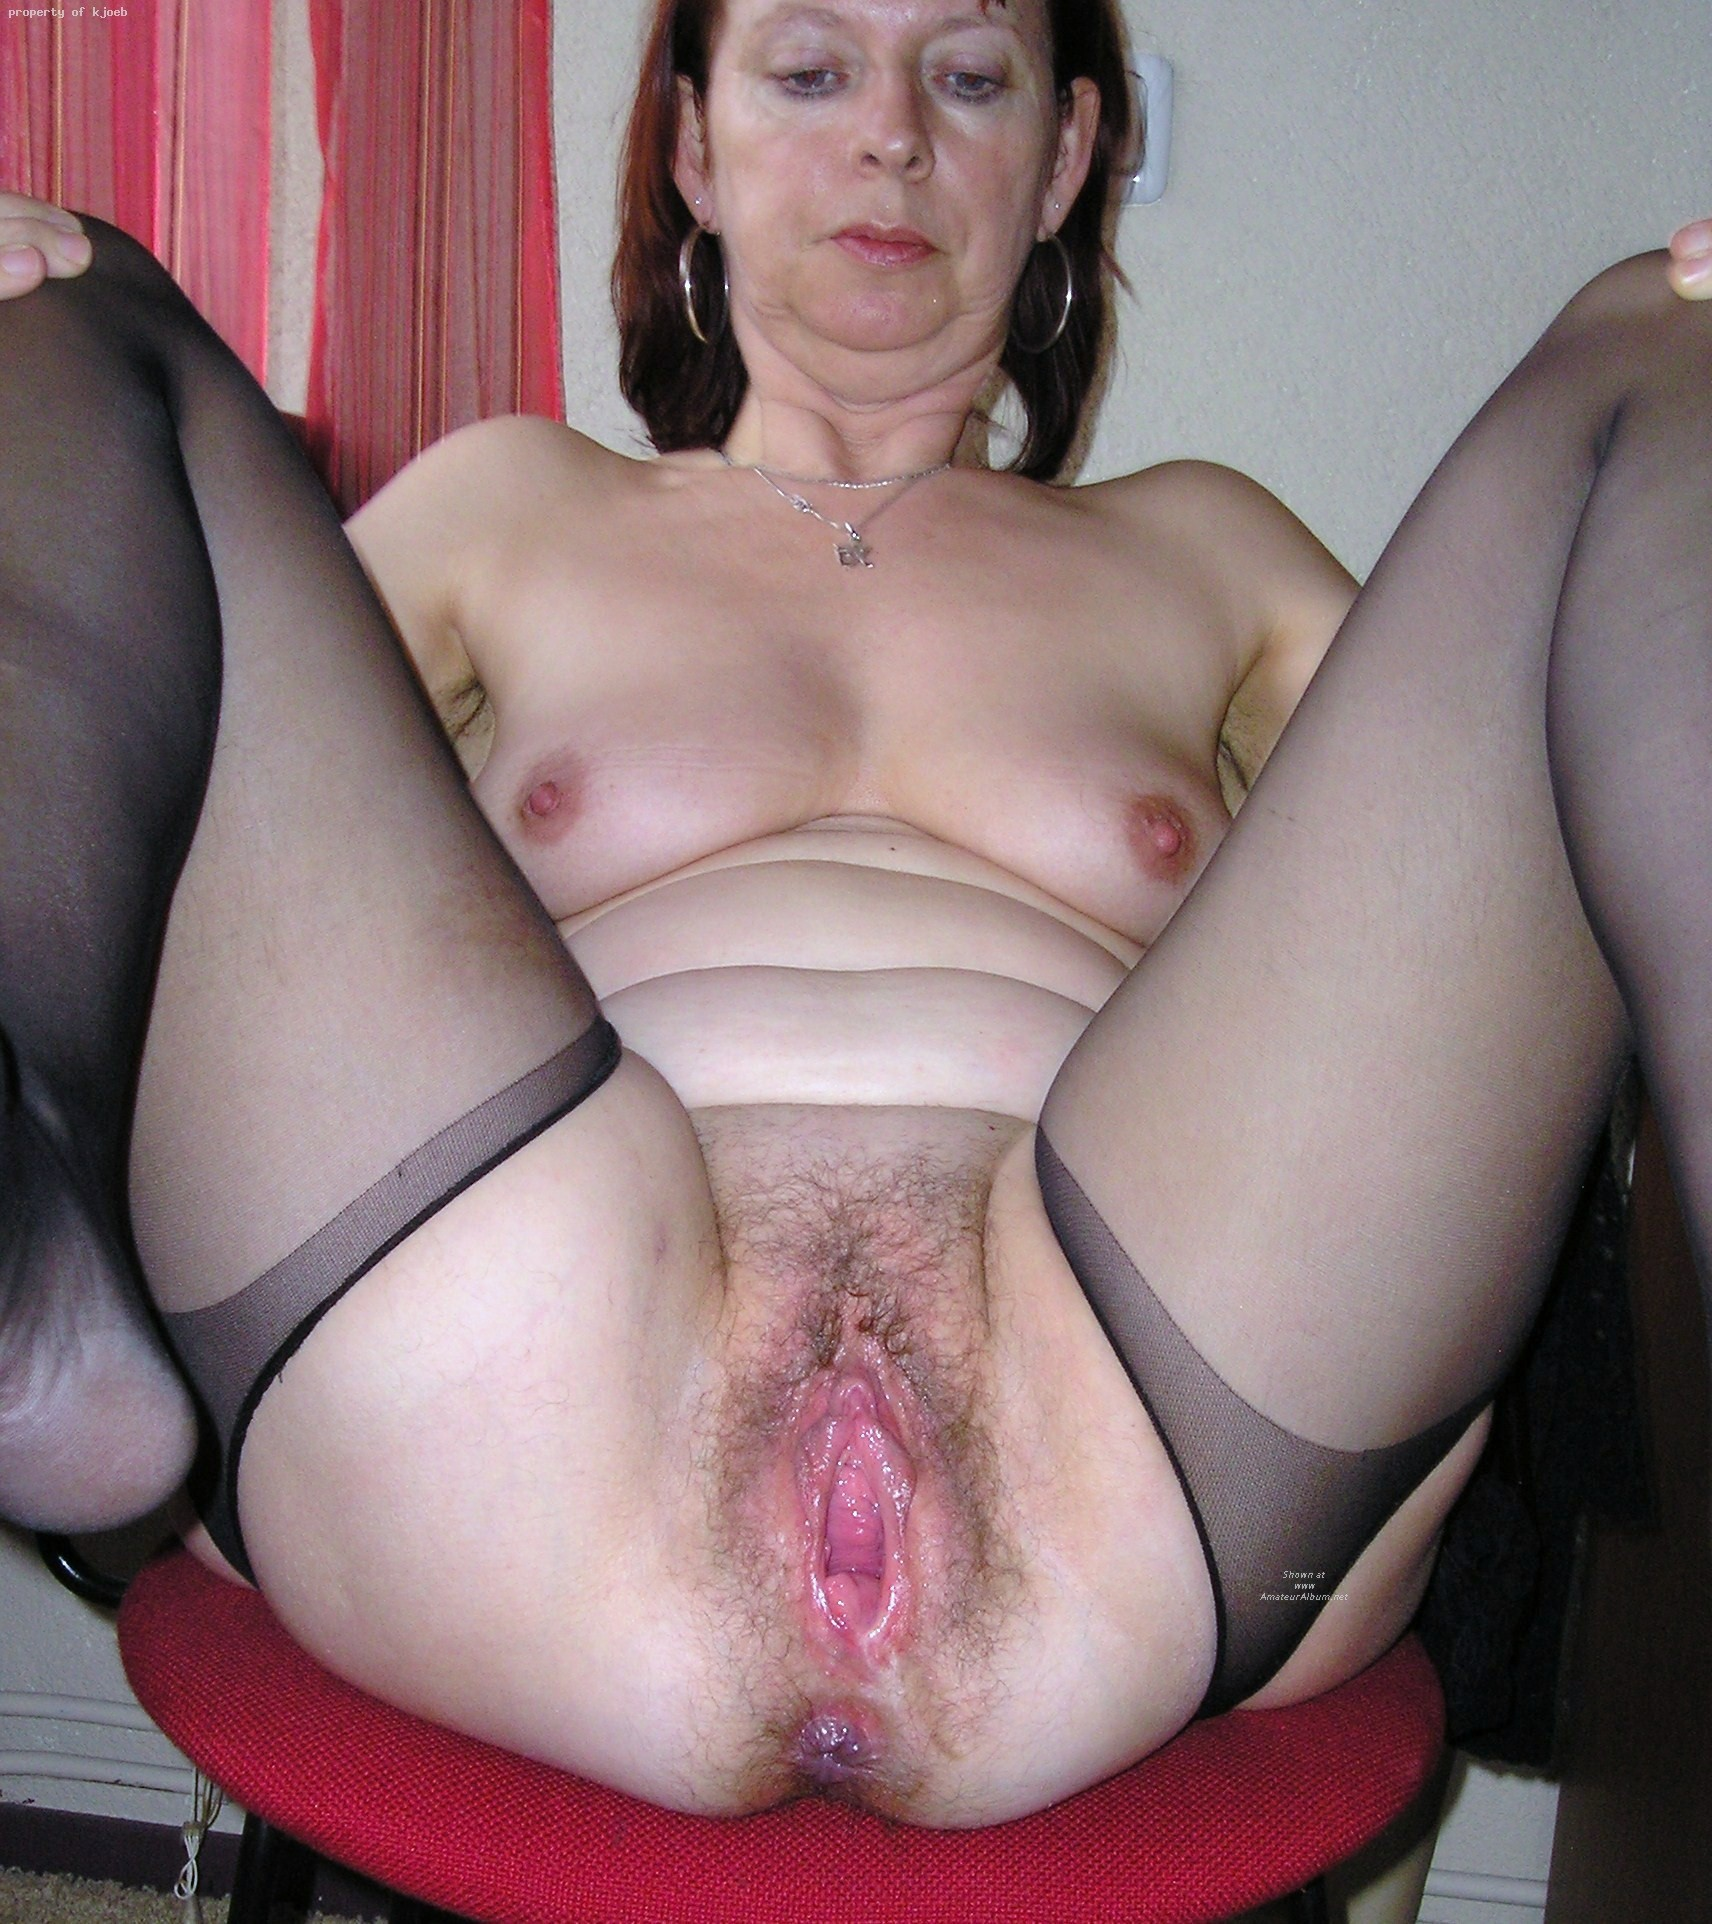 Apologise, amature mature pussy pics interesting